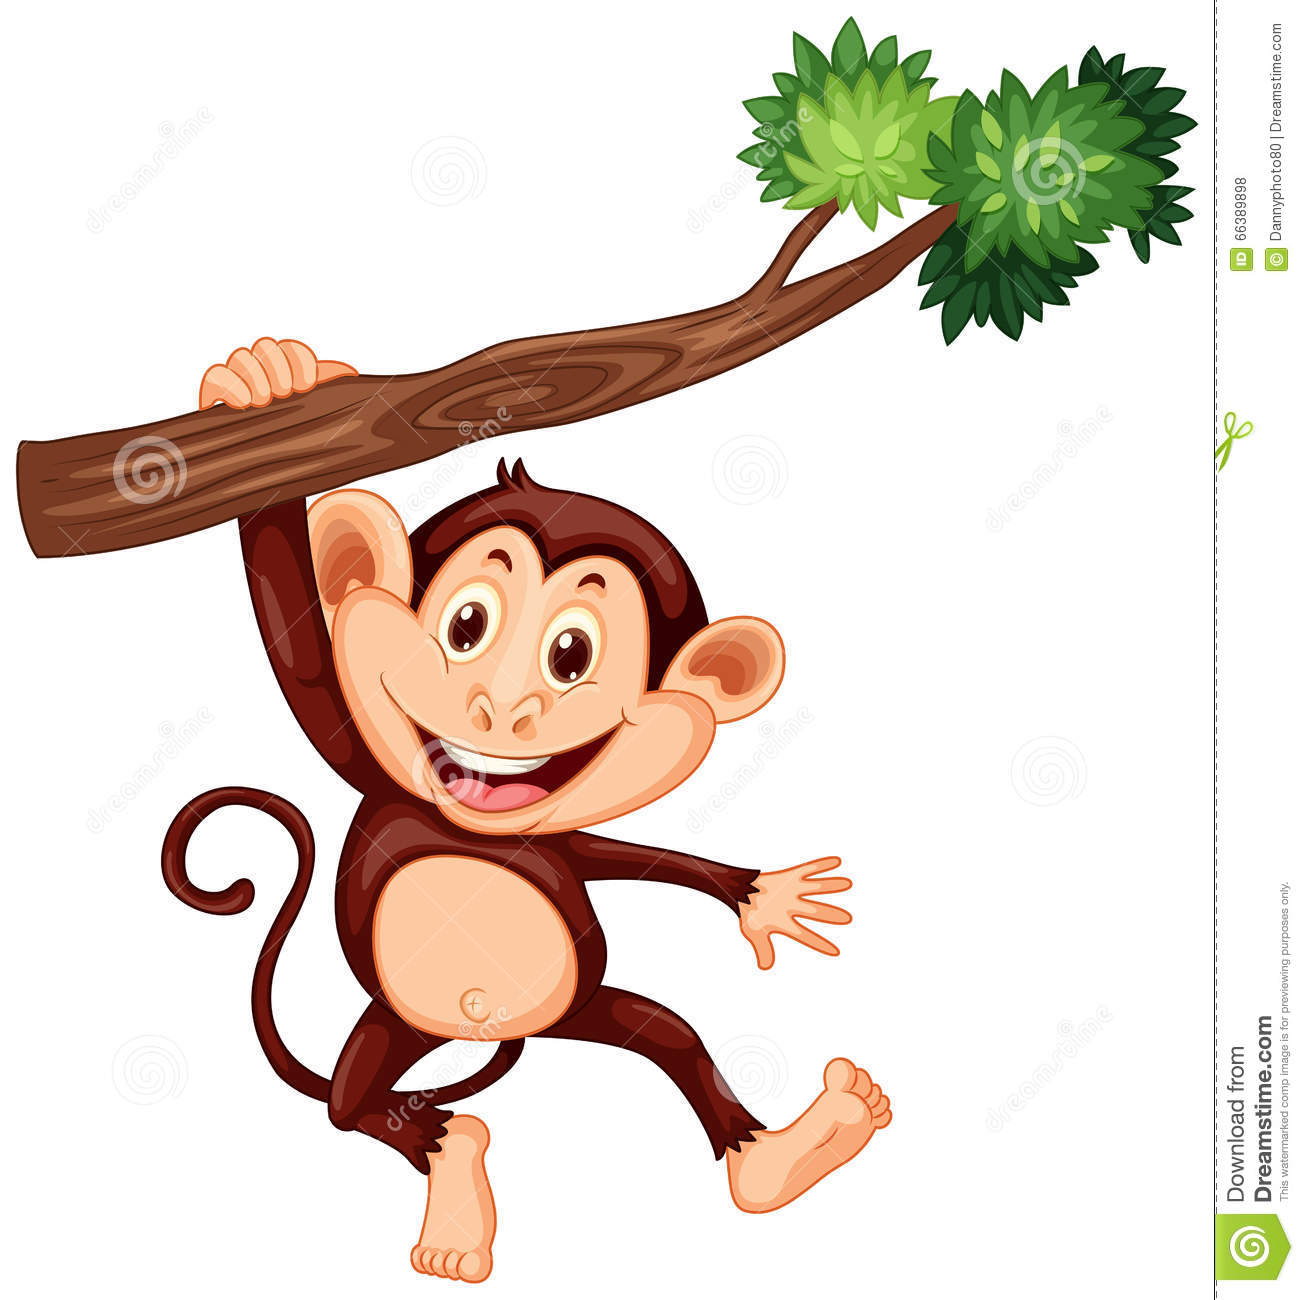 clipart monkey hanging from tree - photo #43